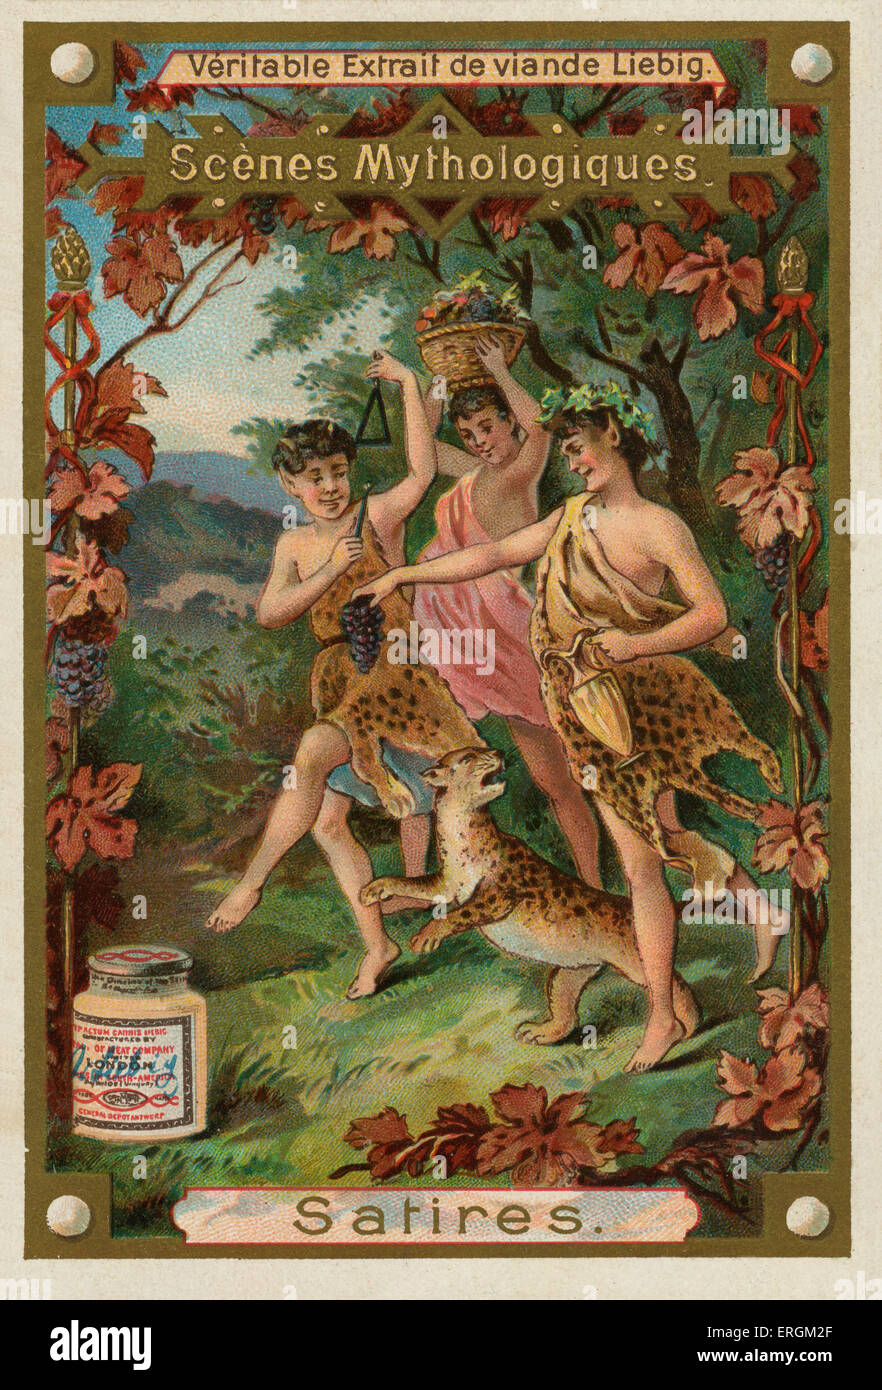 Satyr/ Satires- one of a troop of male companions of Pan and Dionysus with goat-like features. Liebig card, Mythological - Stock Image